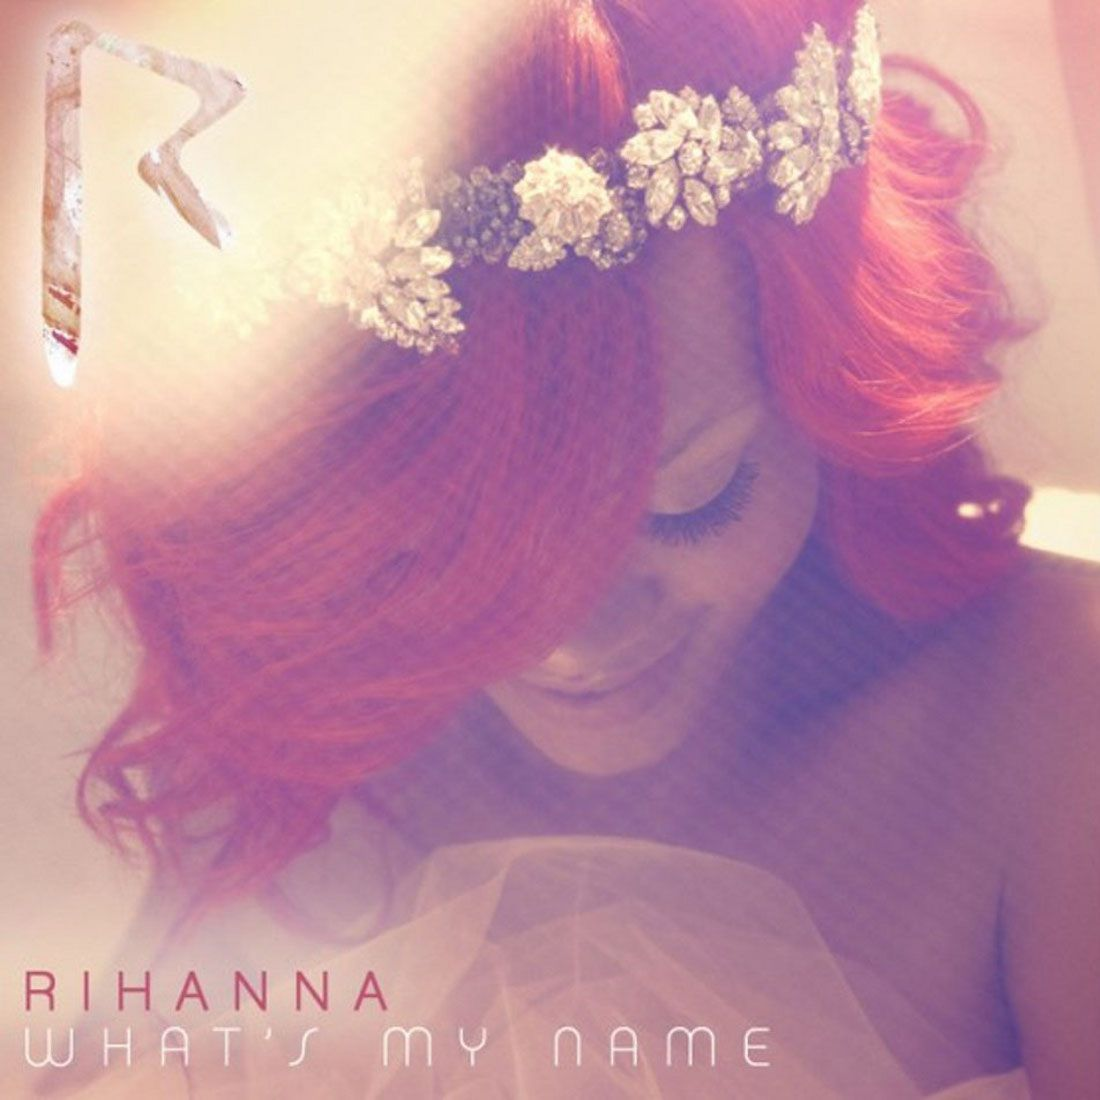 Rihanna - What's My Name featuring Drake